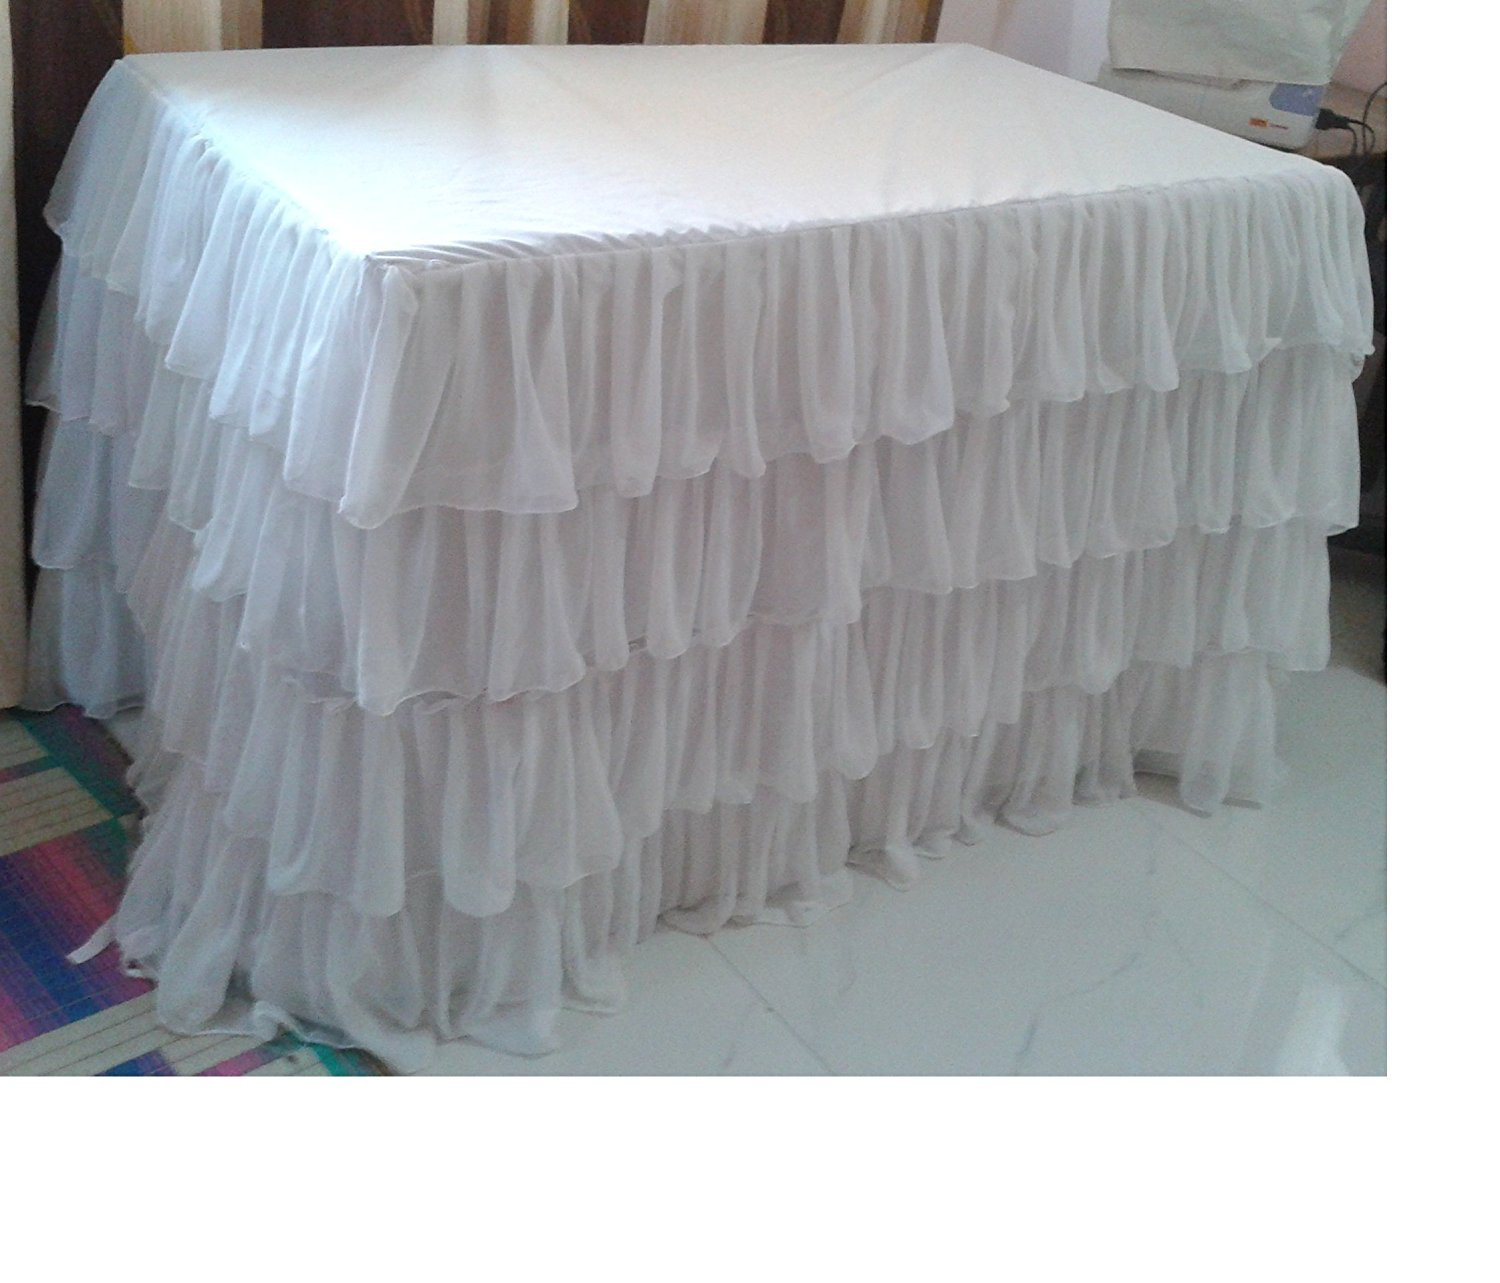 WHITE Layered Table Skirt Cotton Chiffon - Ruffle Layered Complete Table Cover